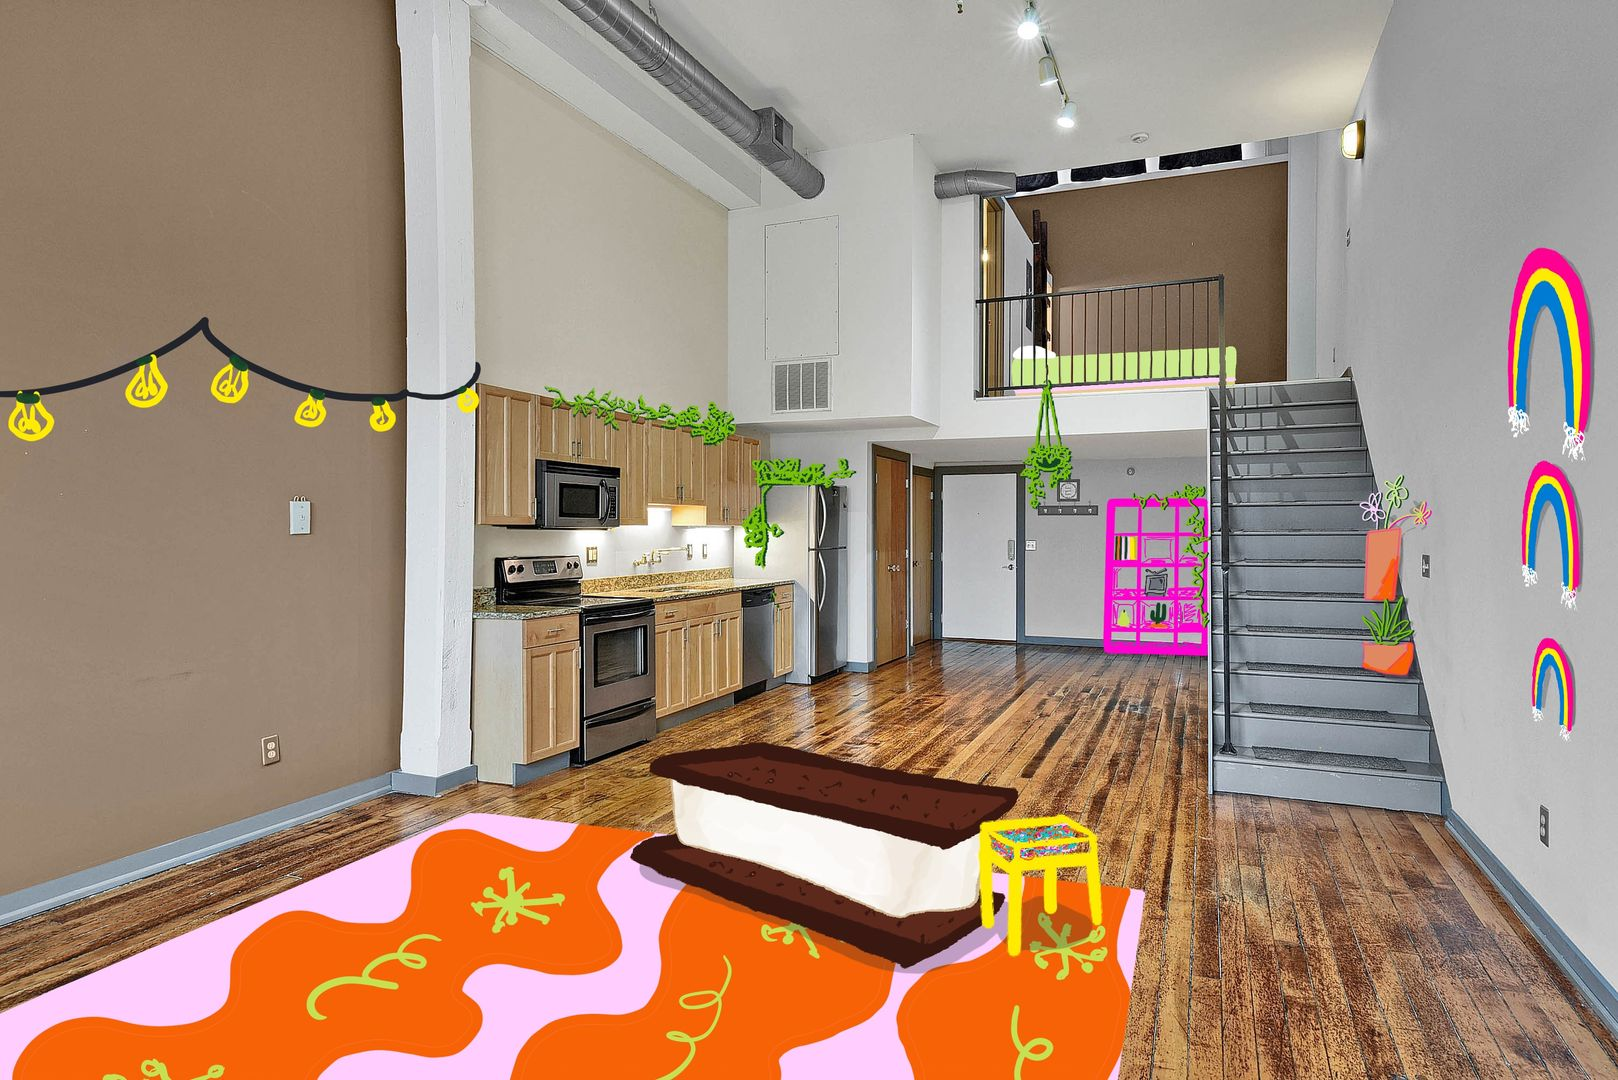 City loft with illustrations superimposed of furniture and decor